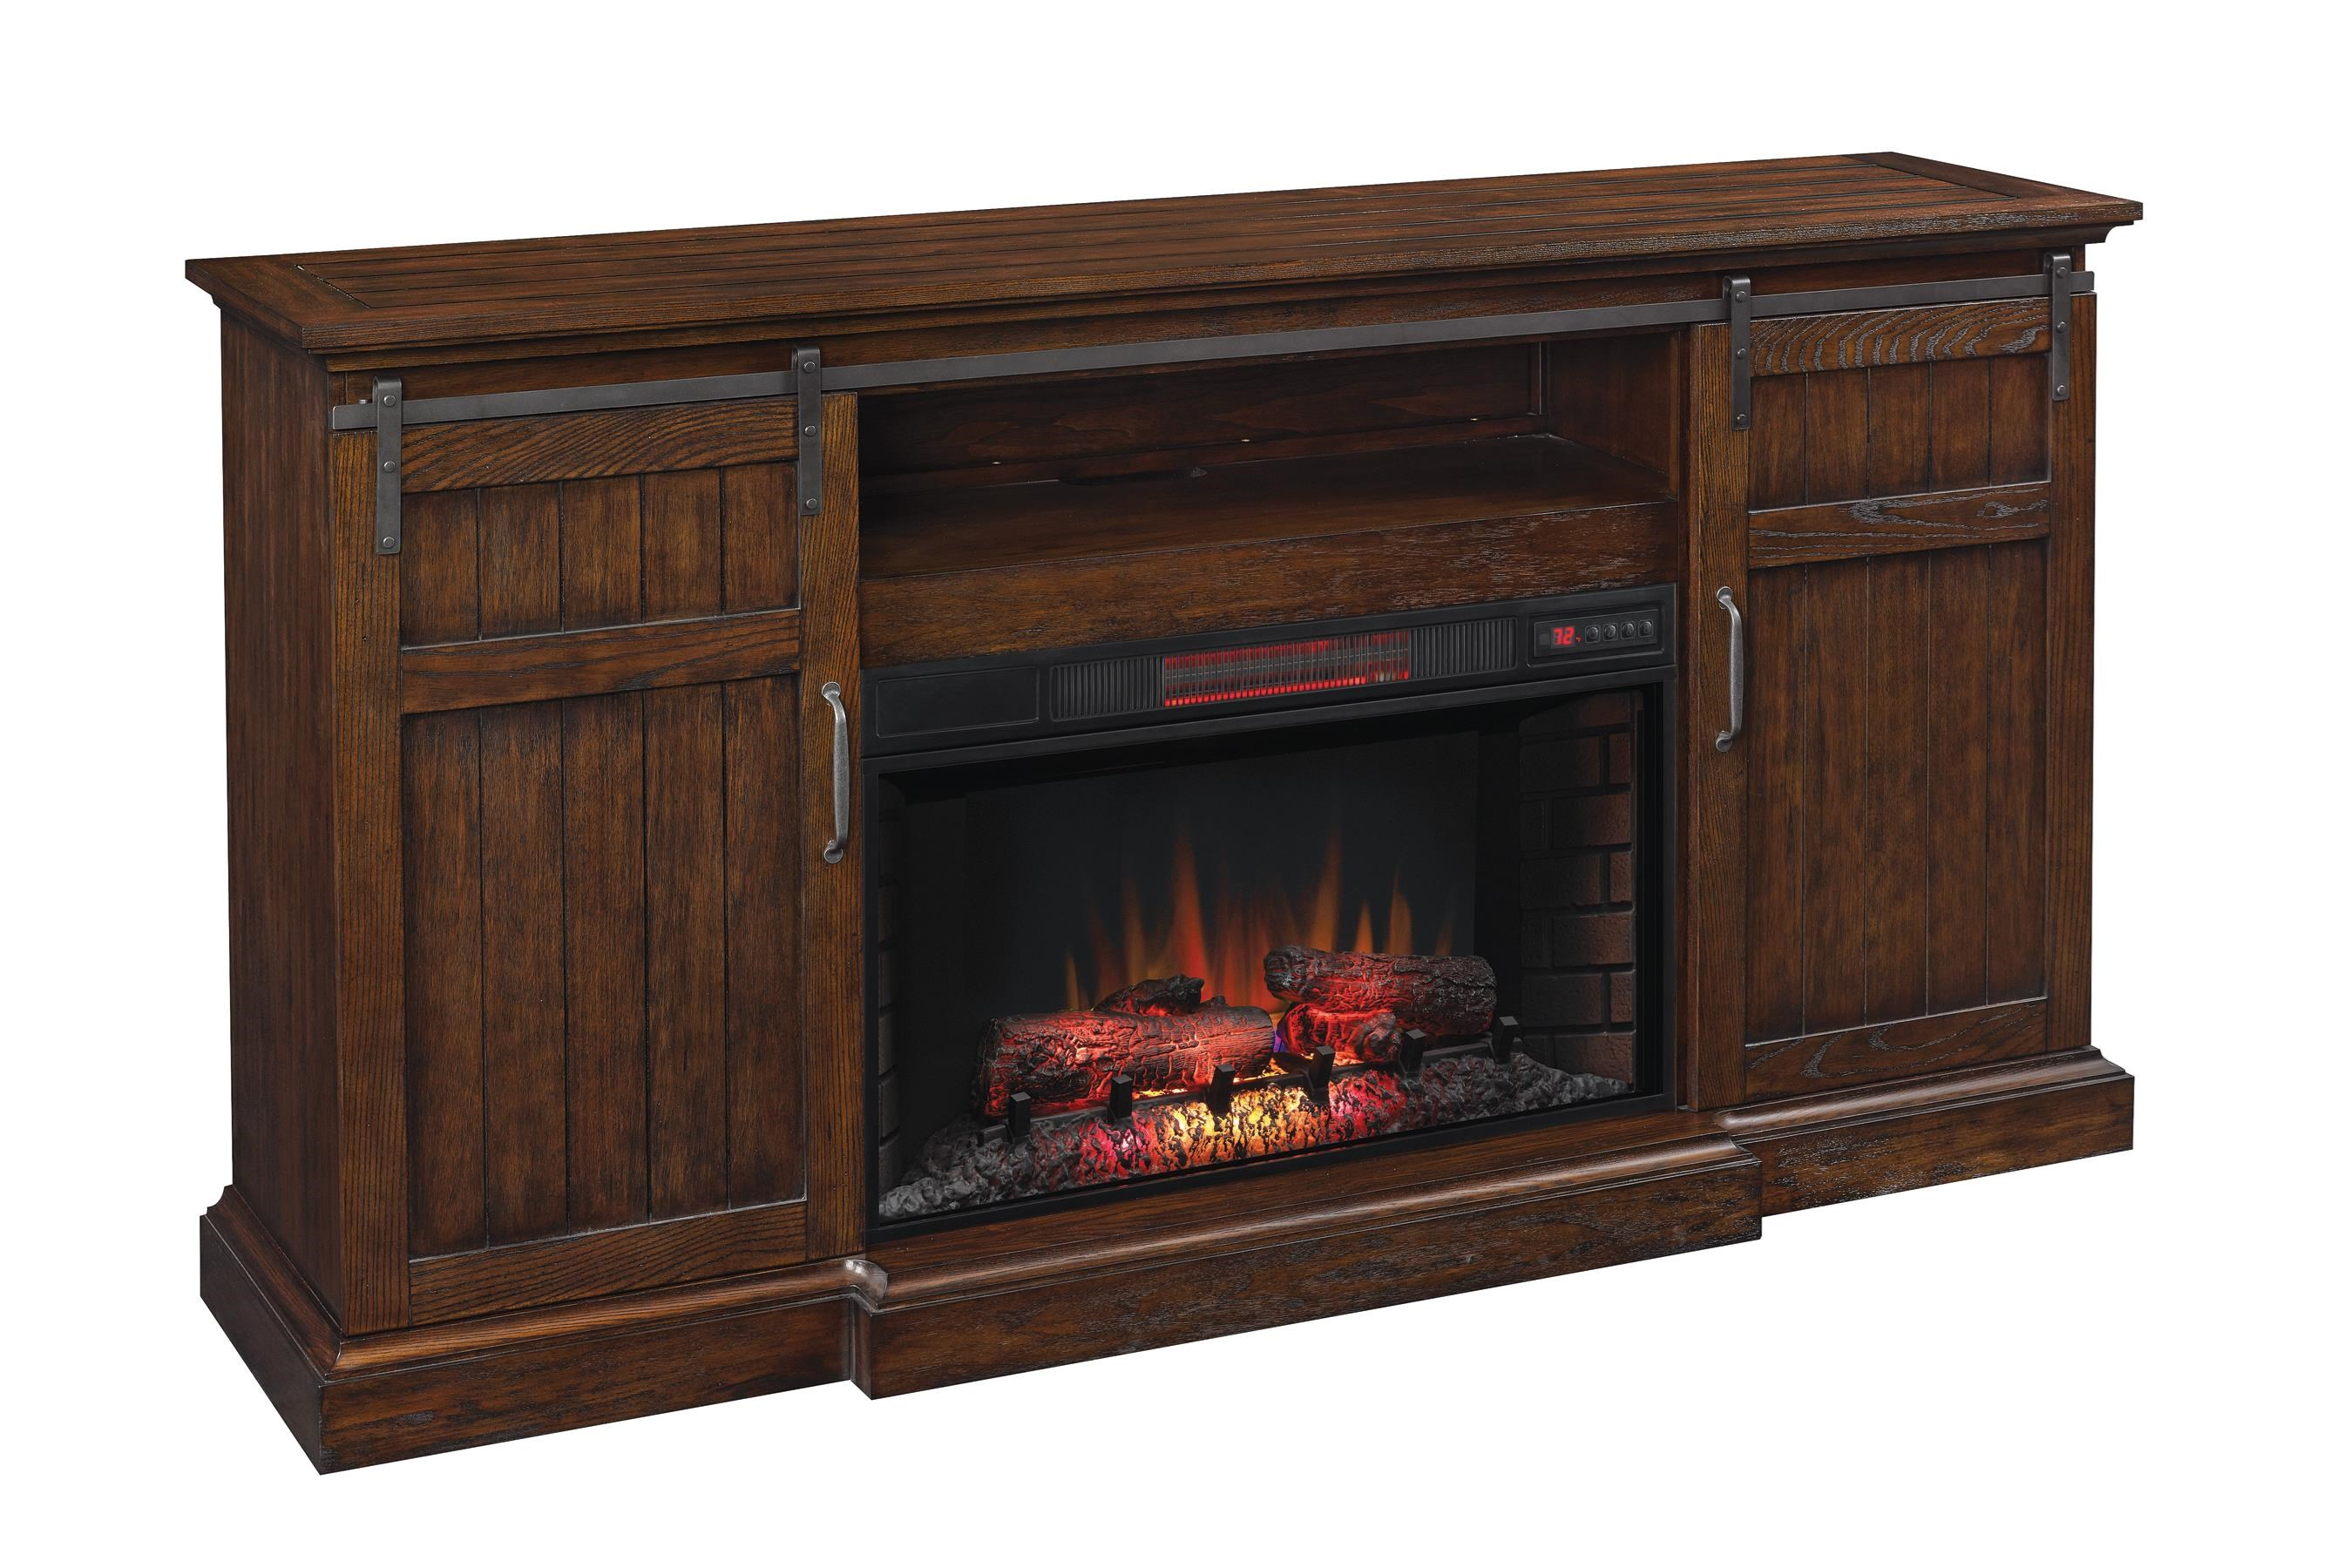 Capella Capella Fireplace Console by ClassicFlame at Morris Home